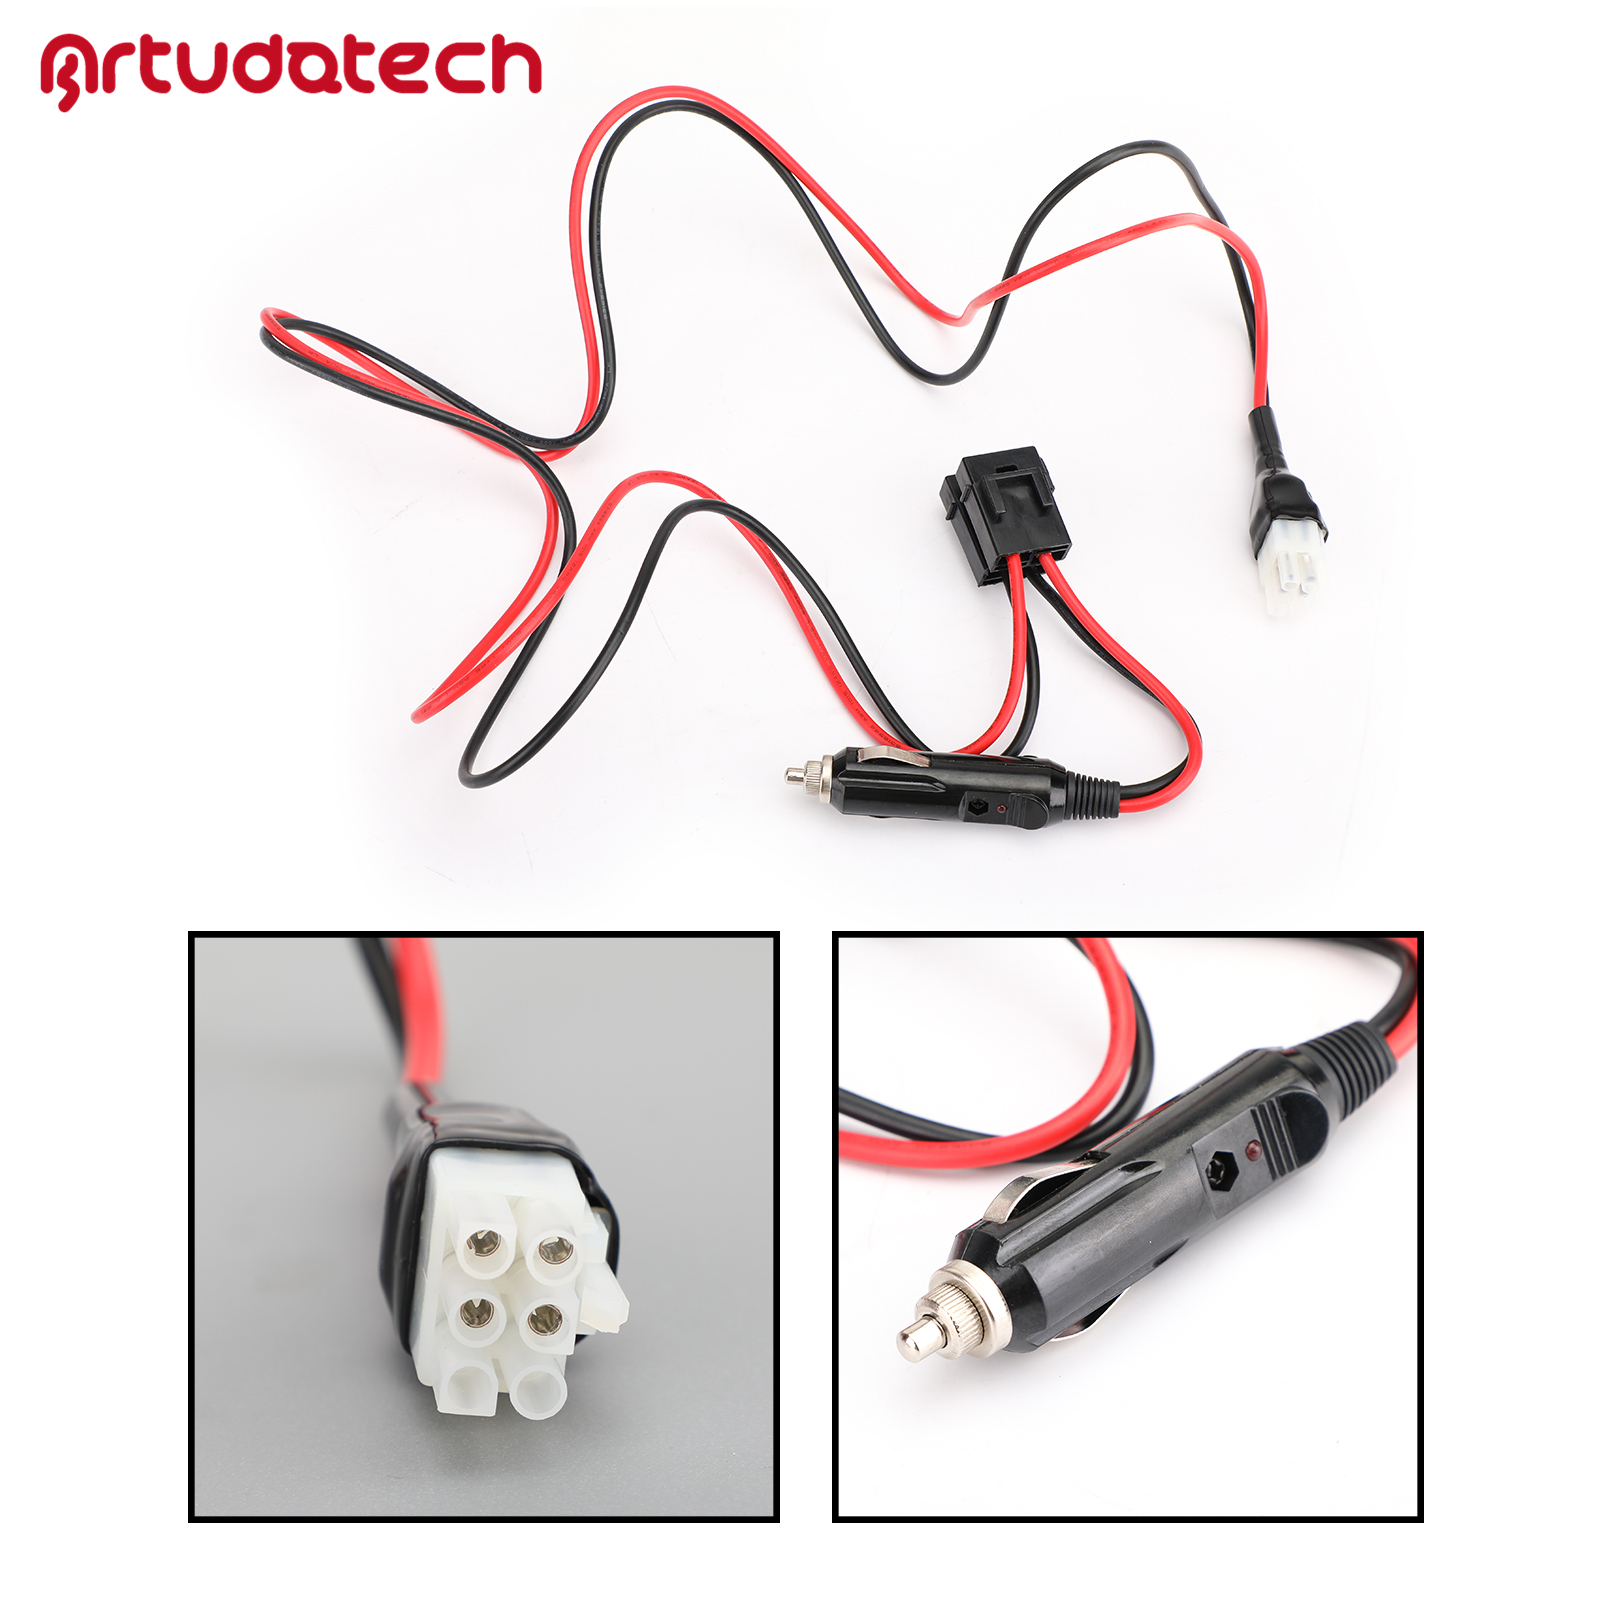 Artudatech Short-Wave Power Cable With / Without Cigarette For FT-857D FT-897D ICOM IC-725A IC-78 IC-706 IC78 IC706 IC725A